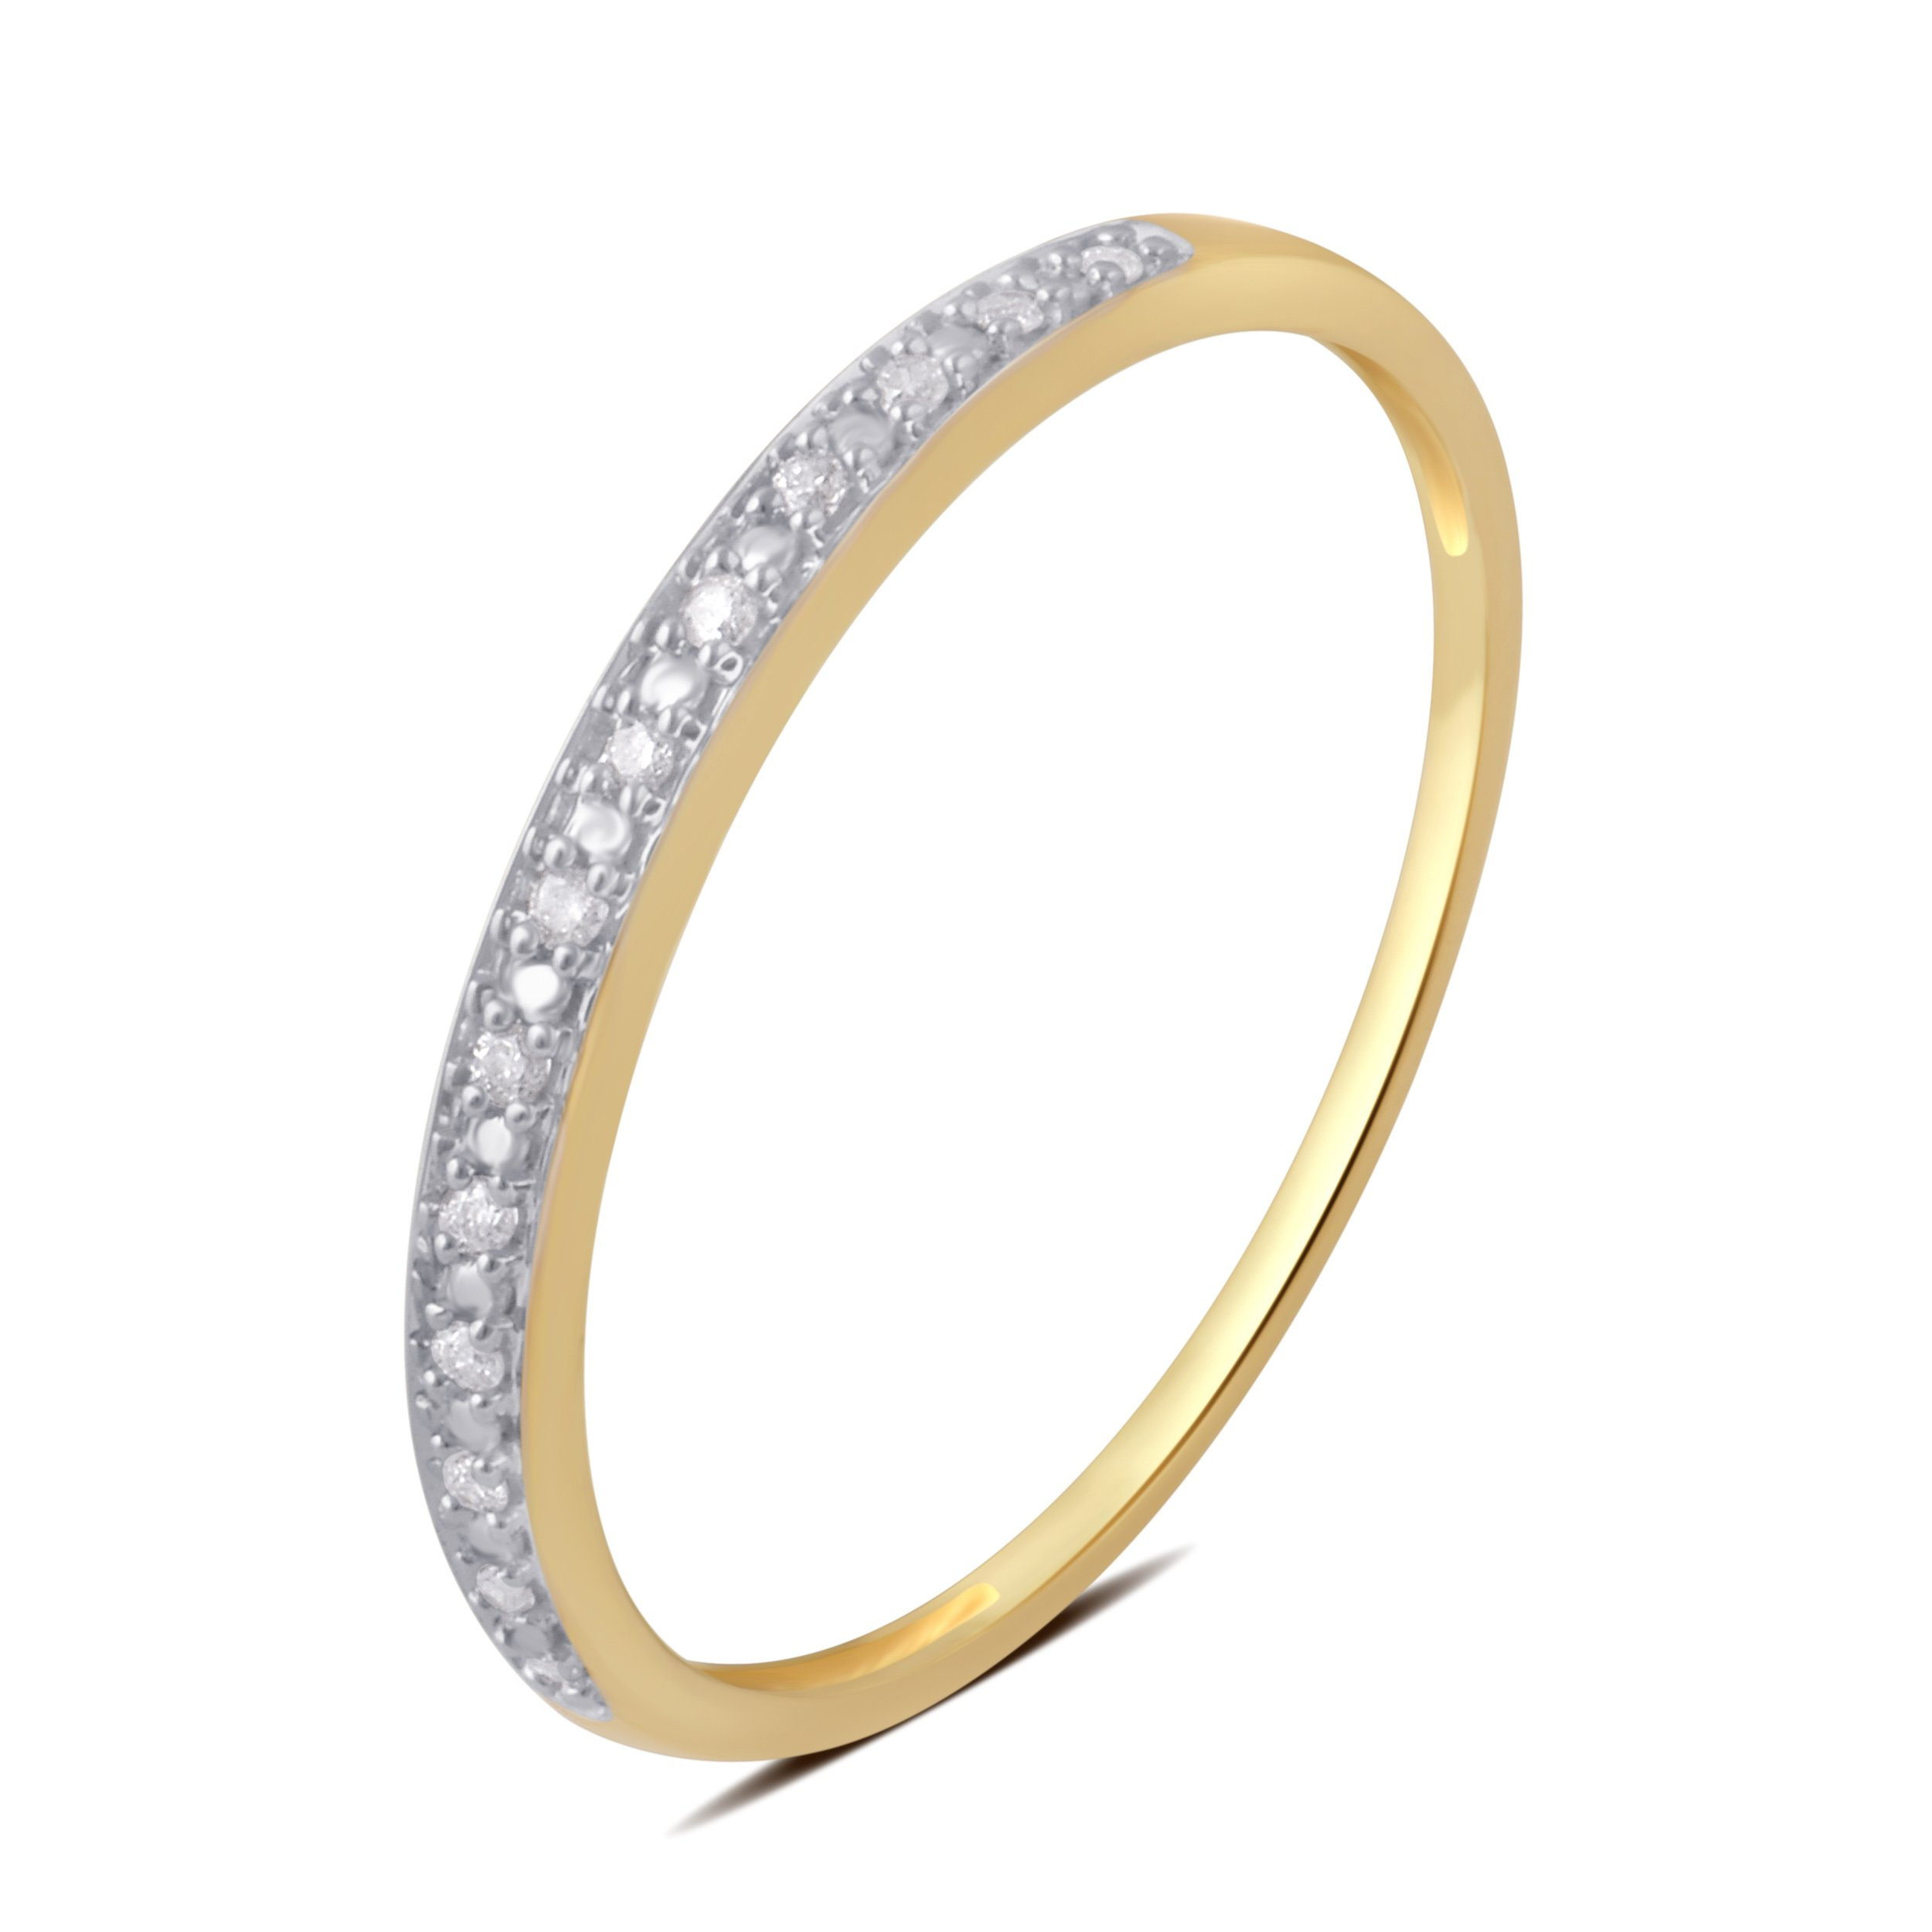 0.05 CTTW Round Diamond Wedding Band in 10K Yellow Gold by Brilliant Diamond (Image #4)